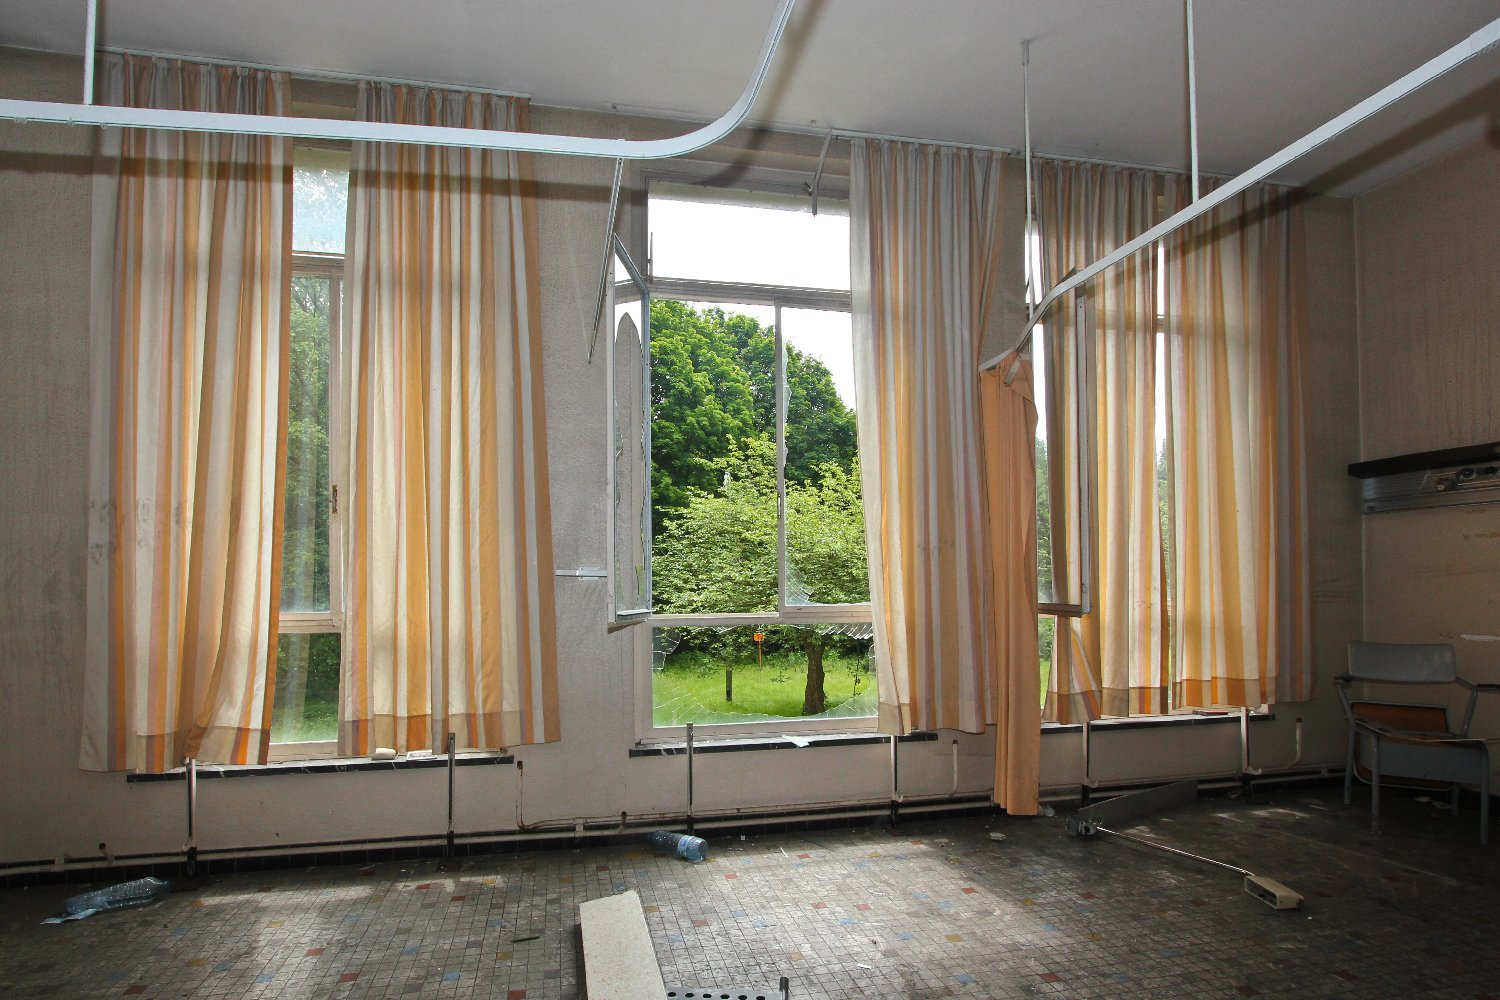 Some rooms still have their curtains in place